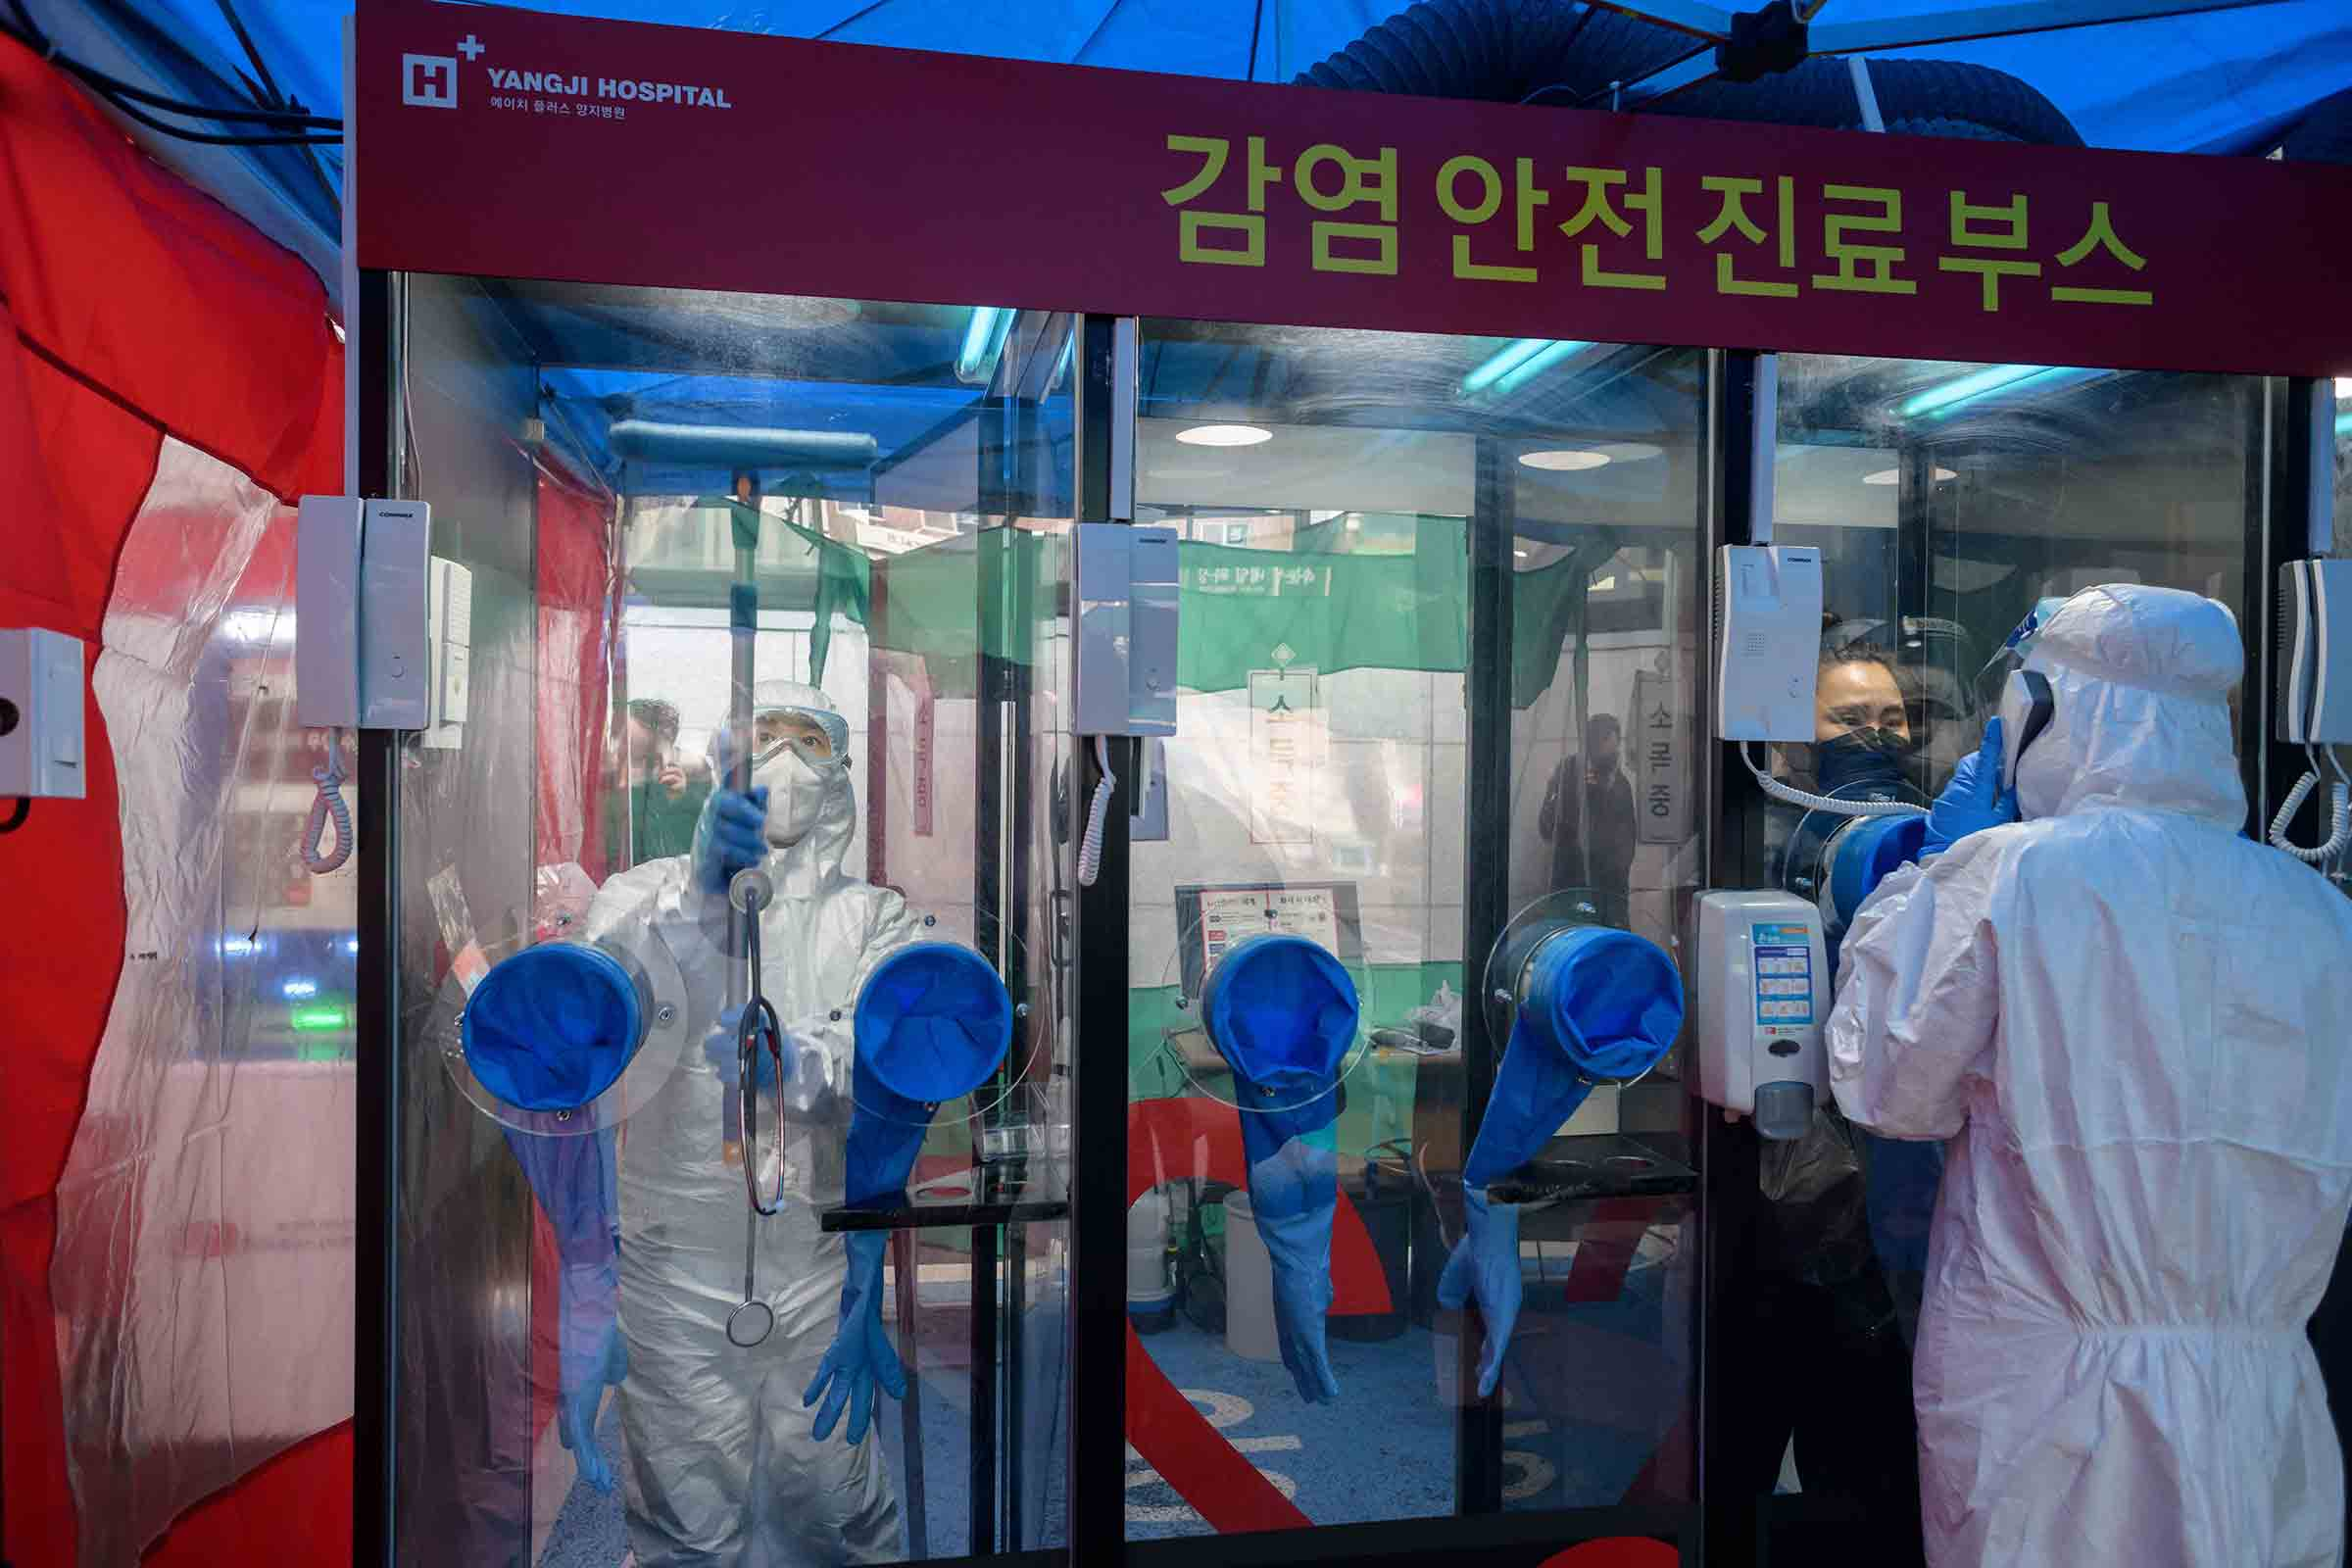 A woman consults a nurse at a walk-up COVID-19 testing booth outside Yangji Hospital in Seoul